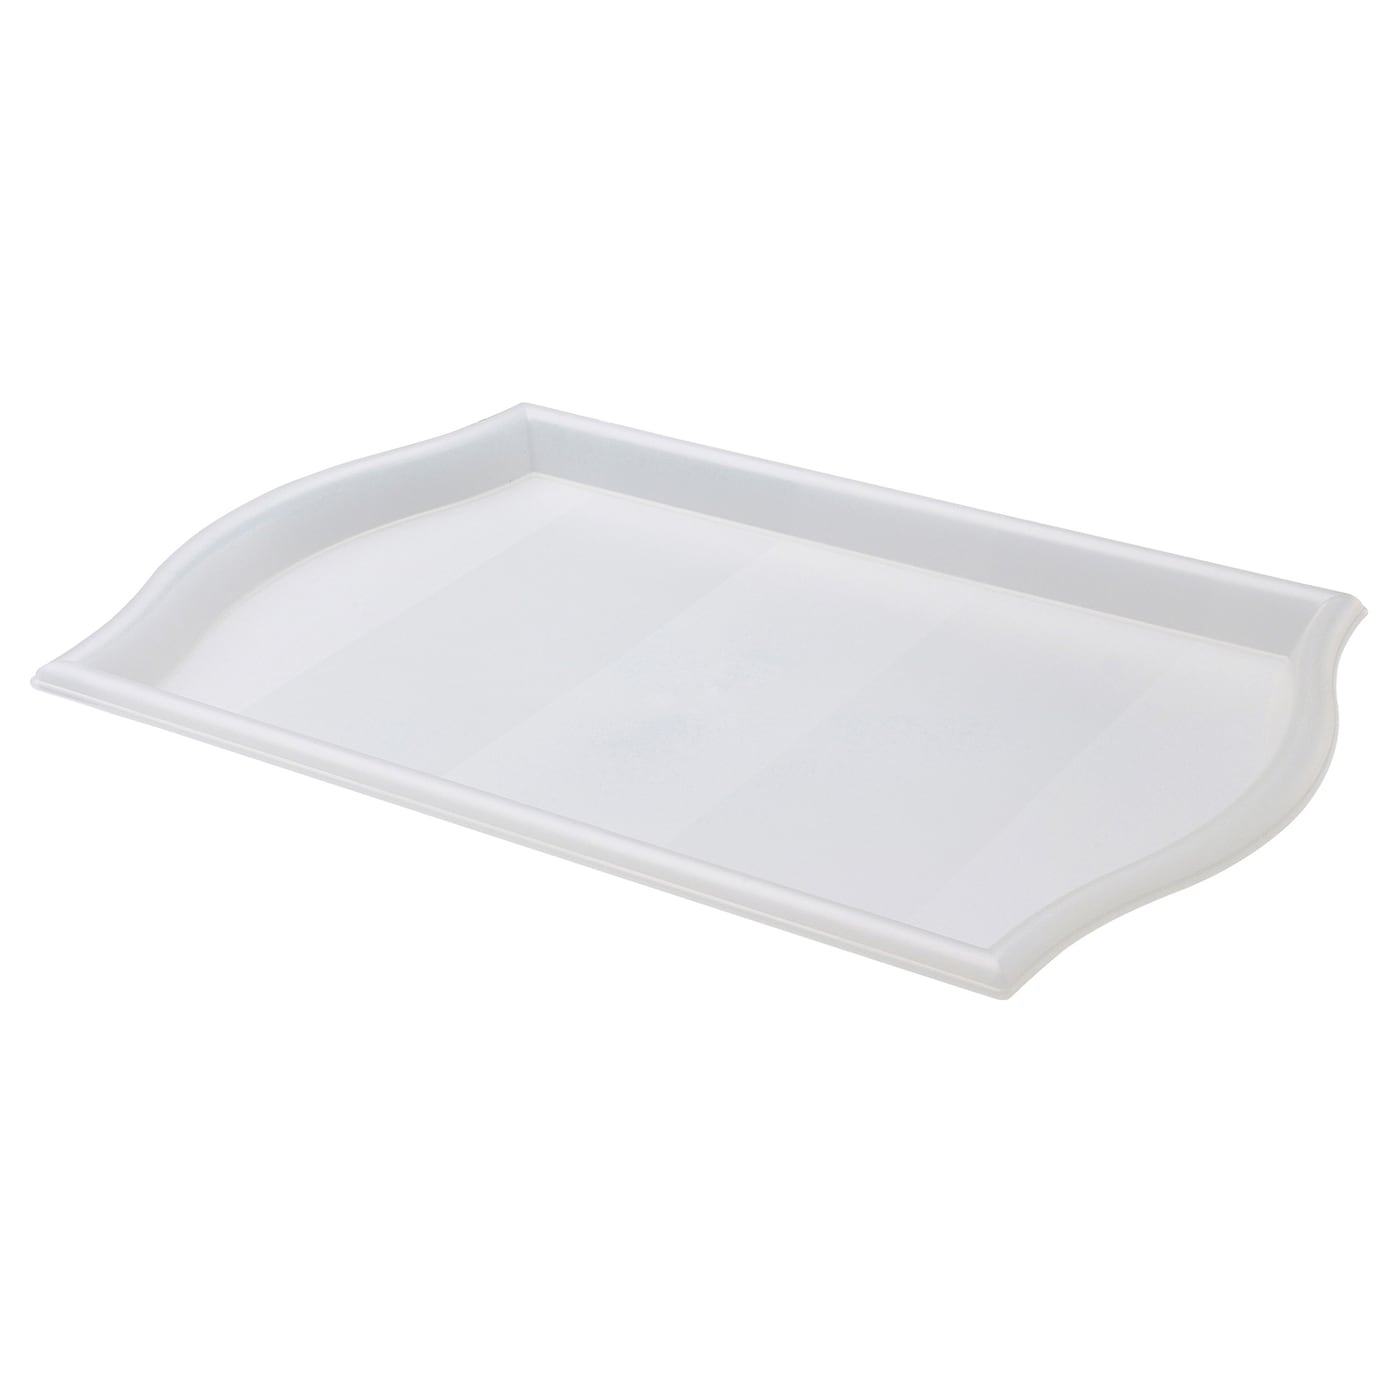 Tableware crockery ikea for Plain white plates ikea